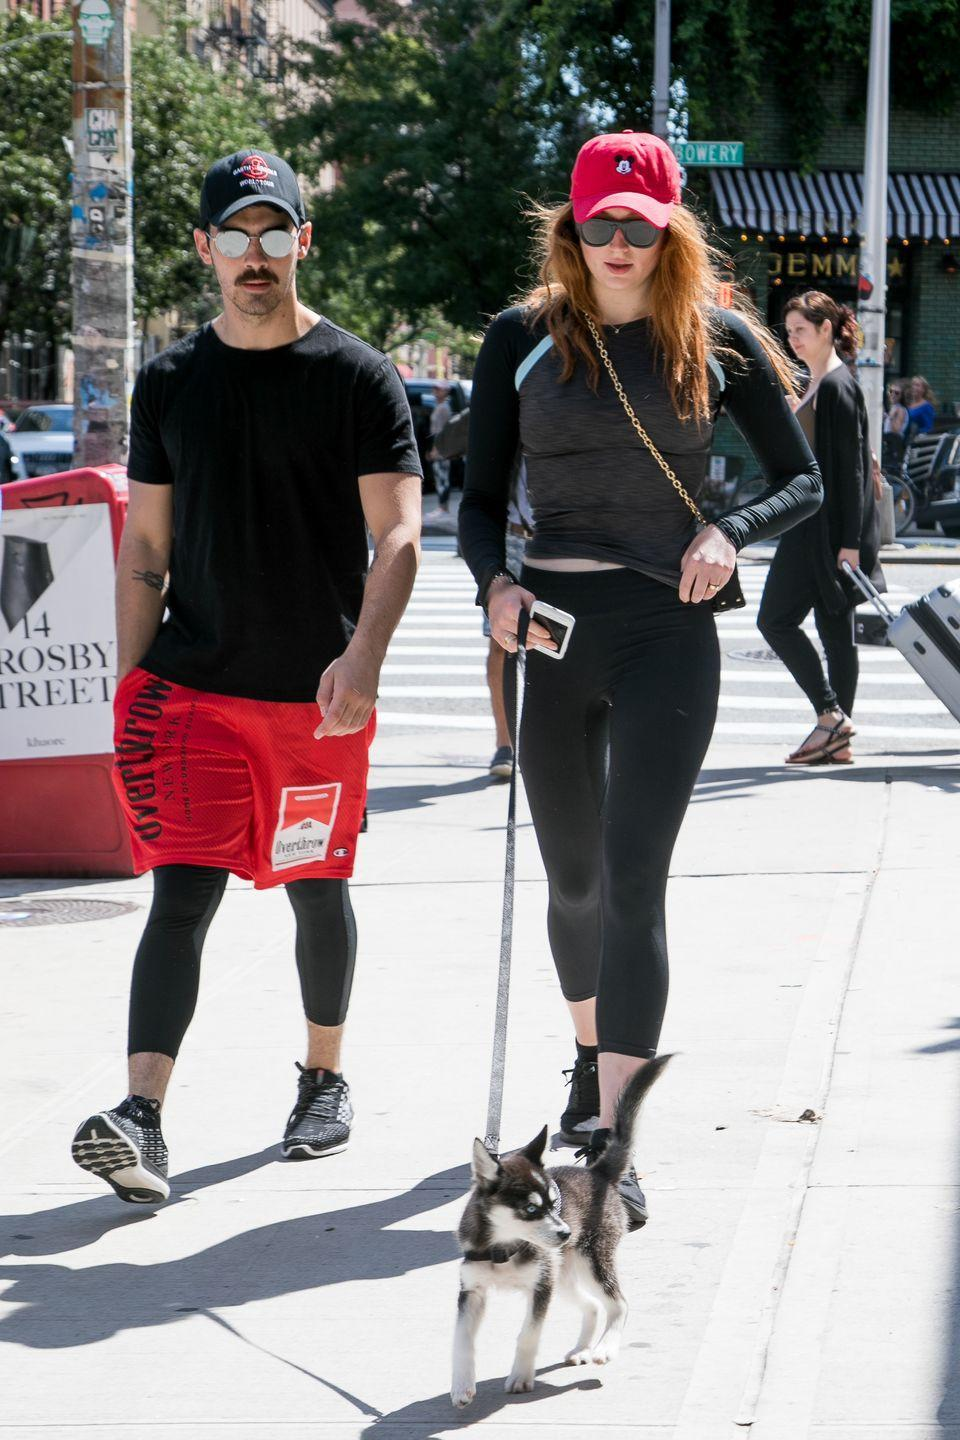 """<p>As things are clearly getting serious for the couple, they choose to <a href=""""https://www.elle.com/uk/life-and-culture/culture/news/a38306/sophie-turner-and-joe-jonas-twosome-has-just-become-a-threesome/"""" rel=""""nofollow noopener"""" target=""""_blank"""" data-ylk=""""slk:get a dog"""" class=""""link rapid-noclick-resp"""">get a dog</a> - Porky Basquit - who goes on to hold<a href=""""https://www.elle.com/uk/life-and-culture/wedding/a28243451/sophie-turner-wedding-dress-joe-jonas-porky-basquit/"""" rel=""""nofollow noopener"""" target=""""_blank"""" data-ylk=""""slk:a key role in their recent wedding."""" class=""""link rapid-noclick-resp""""> a key role in their recent wedding.</a></p><p>They're seen here (with Turner's flame-red hair for her role as Sansa Stark) walking the husky puppy in NYC.</p>"""